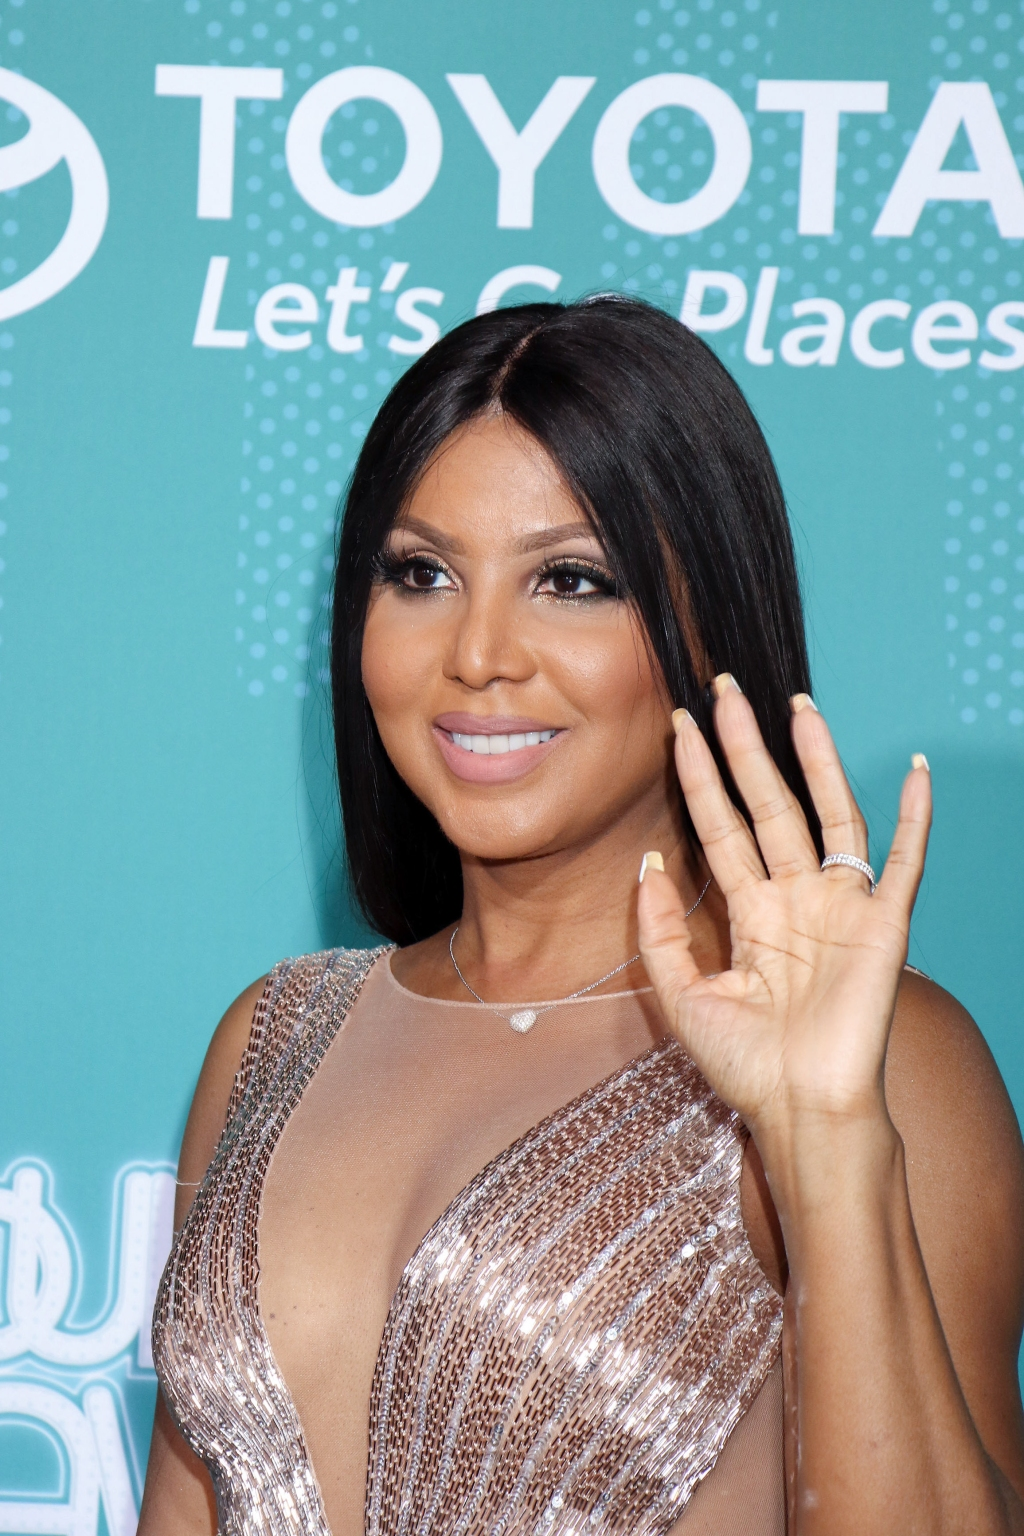 Fans Speculate On Toni Braxton's Changing Look | Black America Web